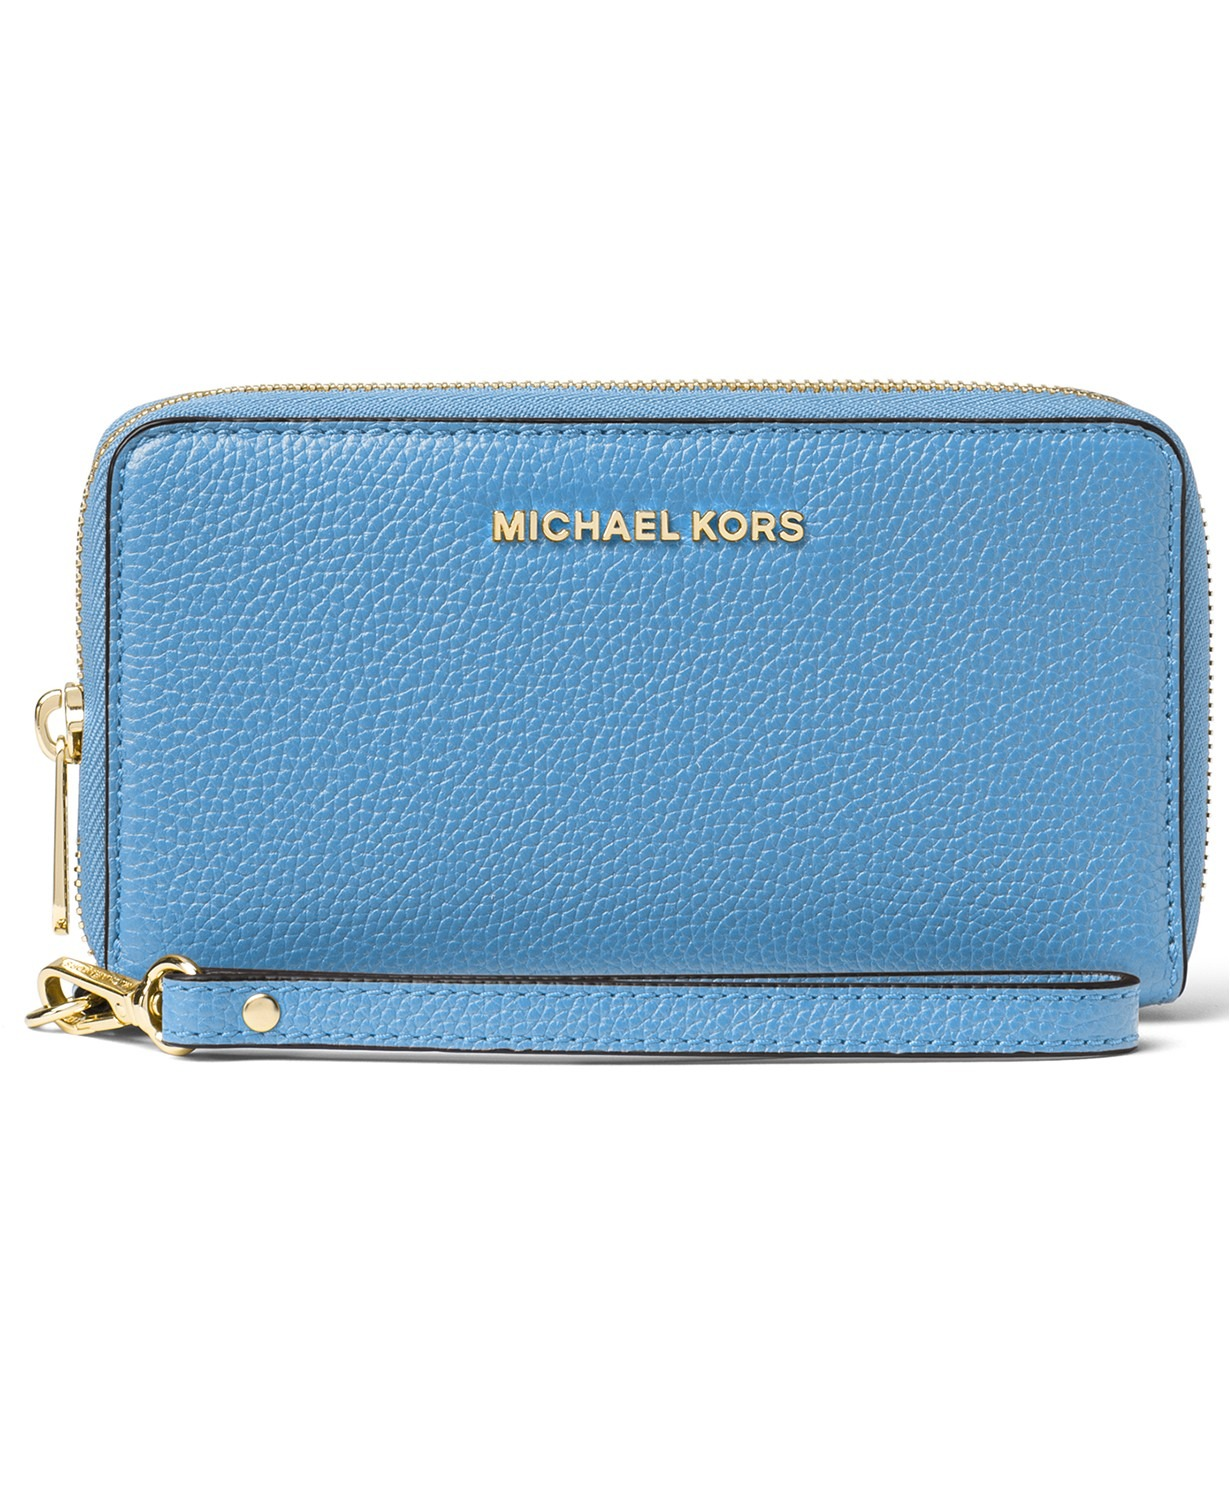 VÍ CẦM TAY MICHAEL KORS MERCER LEATHER MULTI FUNCTION PHONE WRISTLET, SOUTH PACIFIC / GOLD